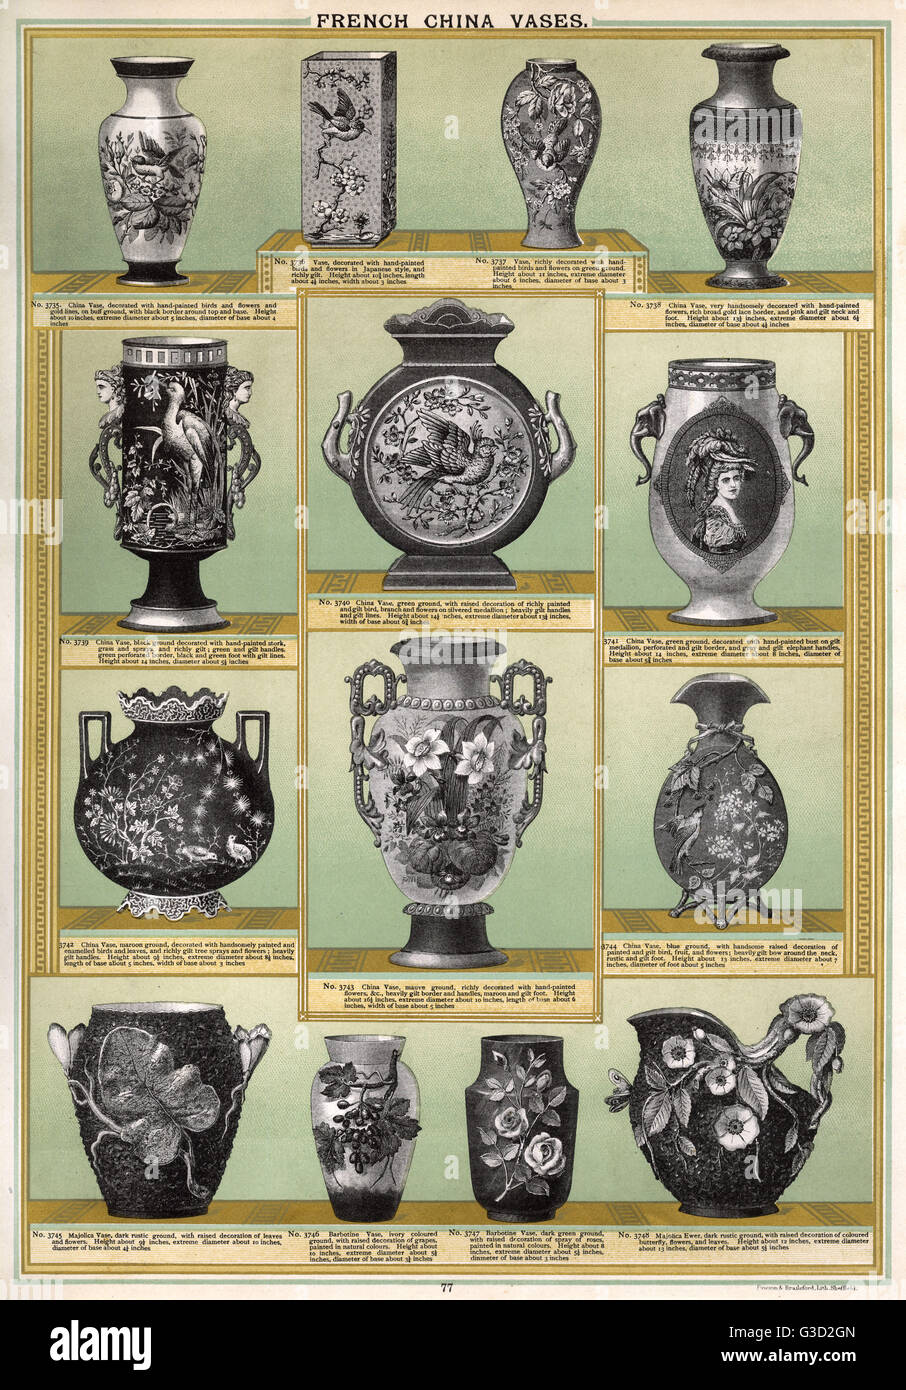 French China Vases, Plate 77, showing ornately decorated vases in different shapes and styles.      Date: circa - Stock Image